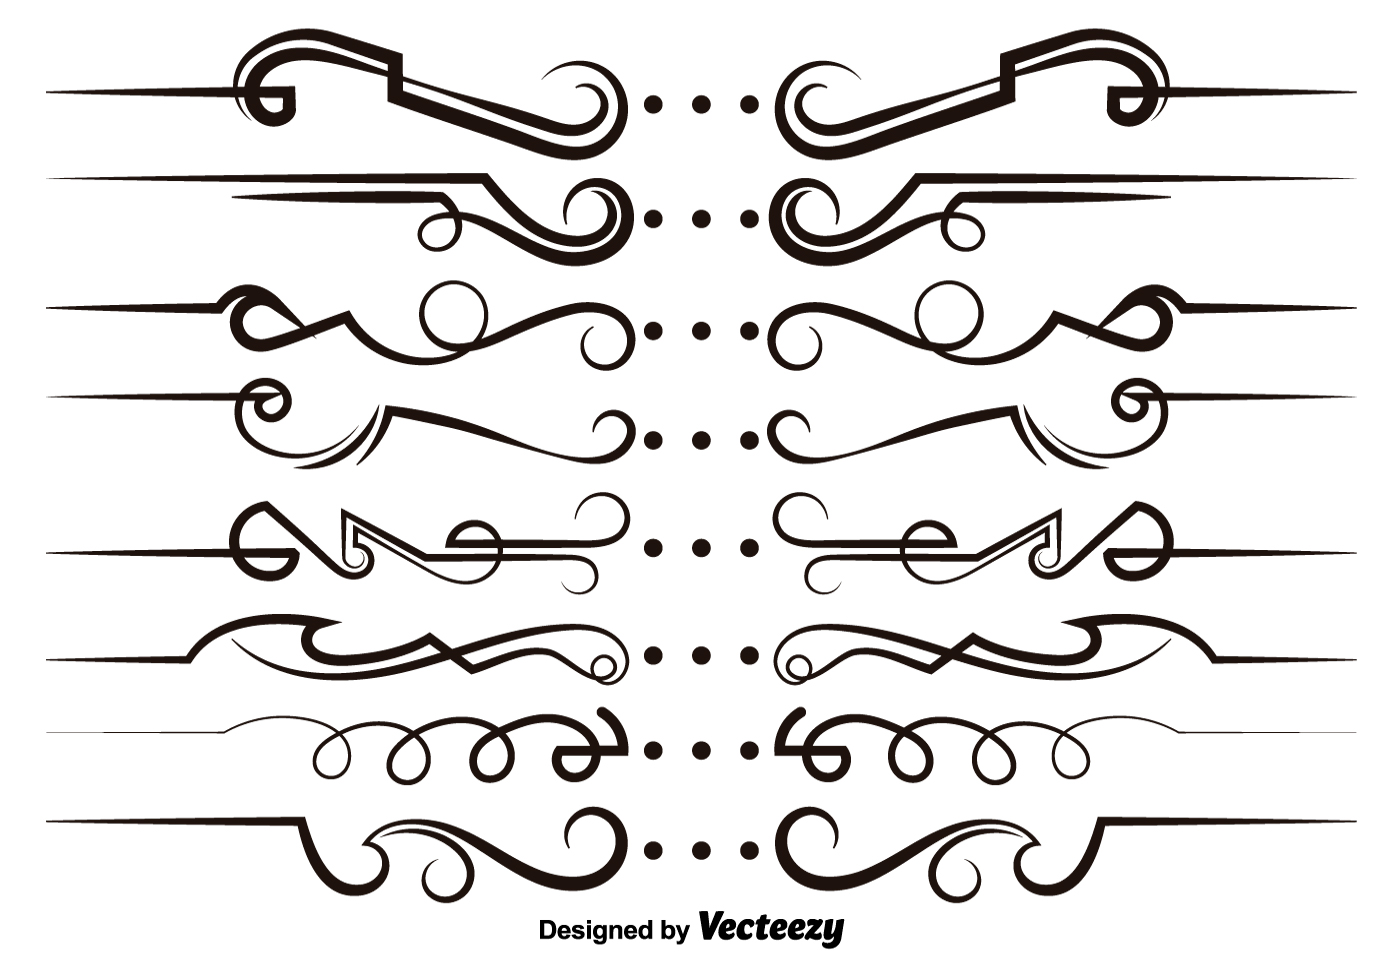 Vector modern scrollwork elements download free vector for Decorative scrollwork